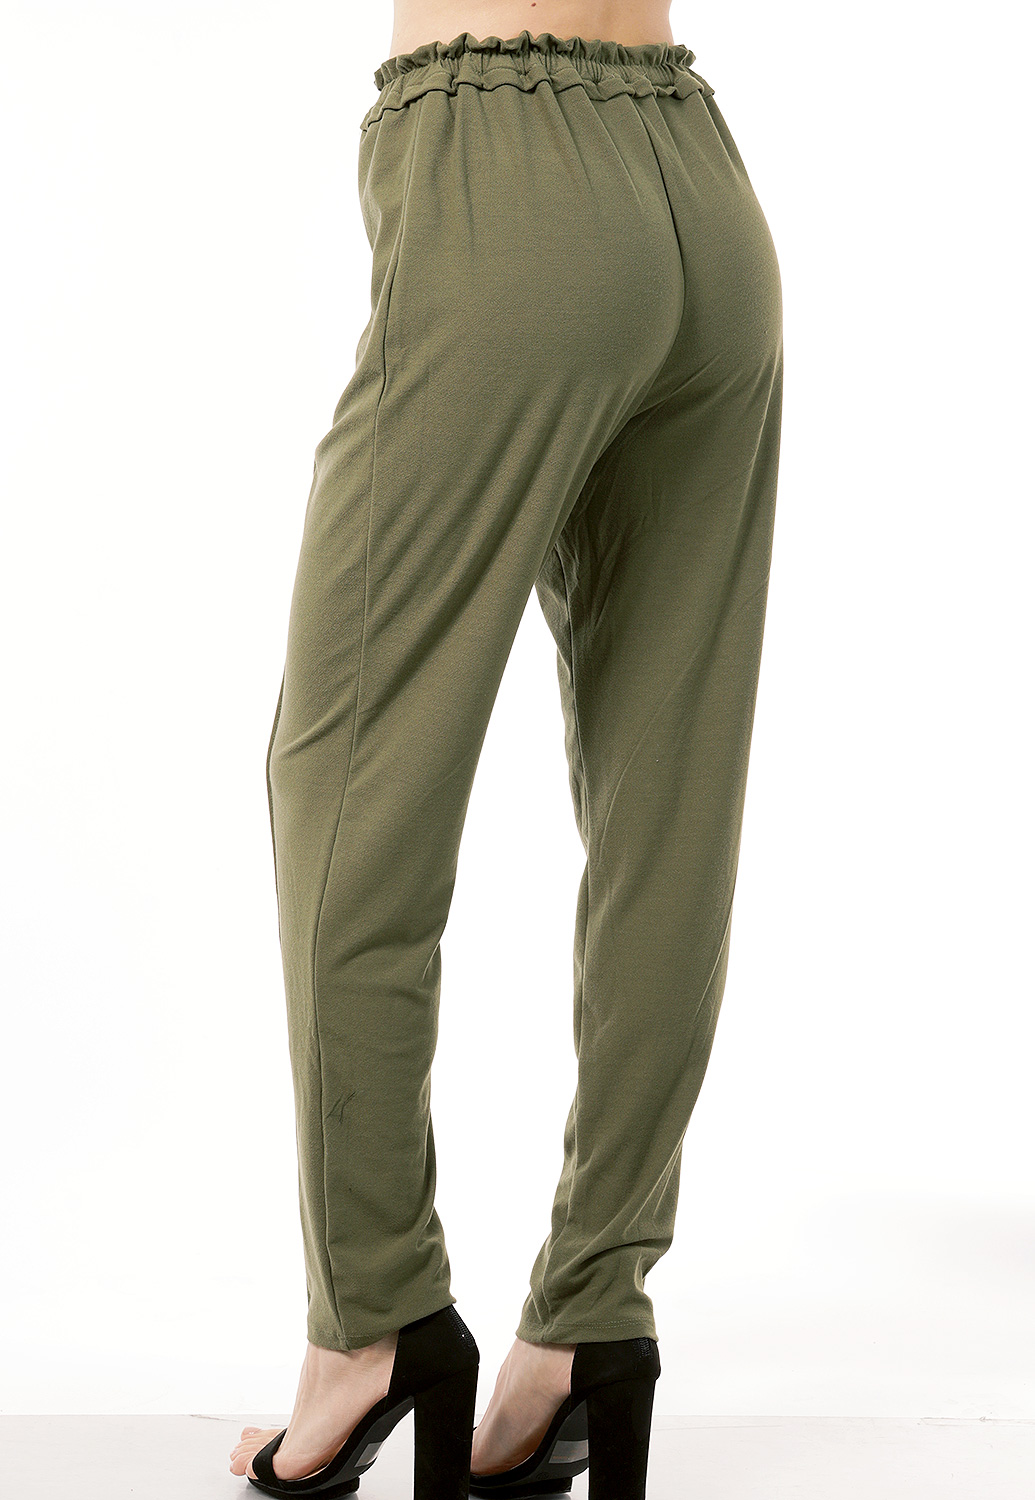 Tie Front Elastic Waistband Casual Pants